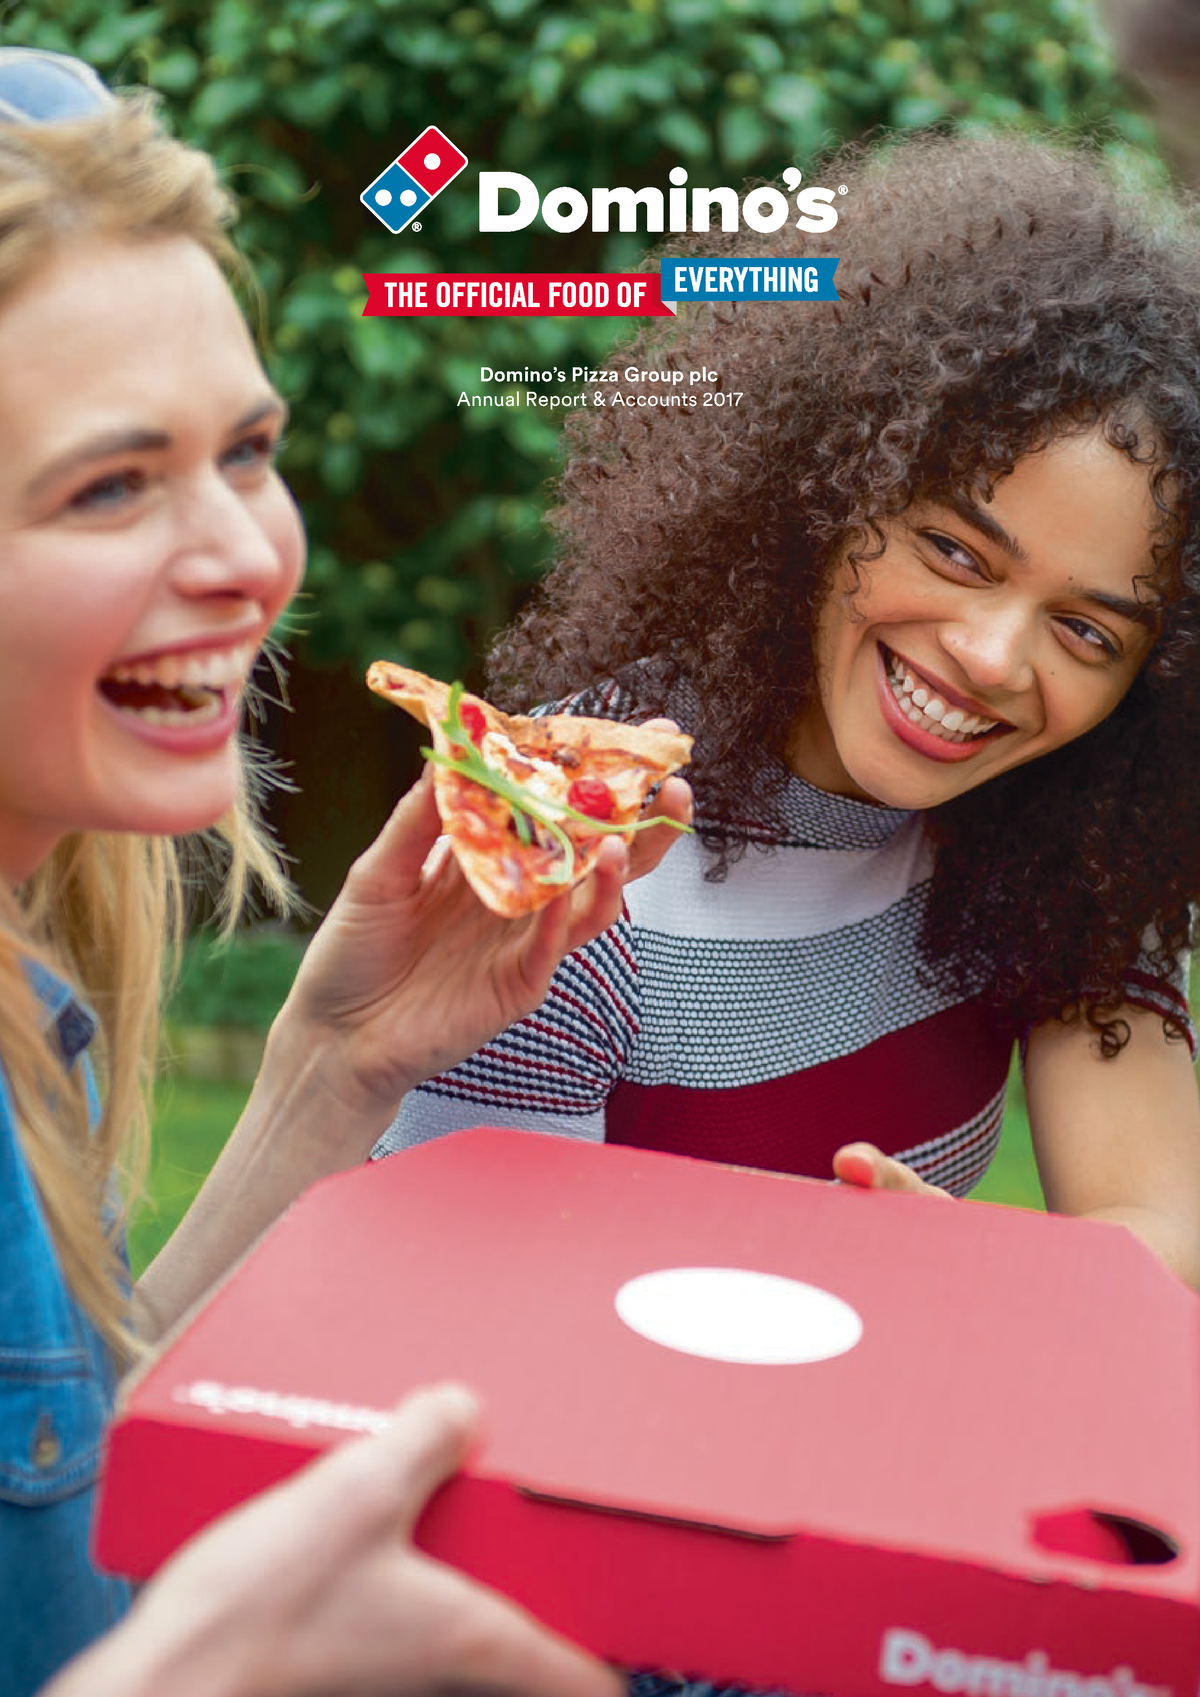 Dominos pizza group plc annual report and accounts 2017 - N14512